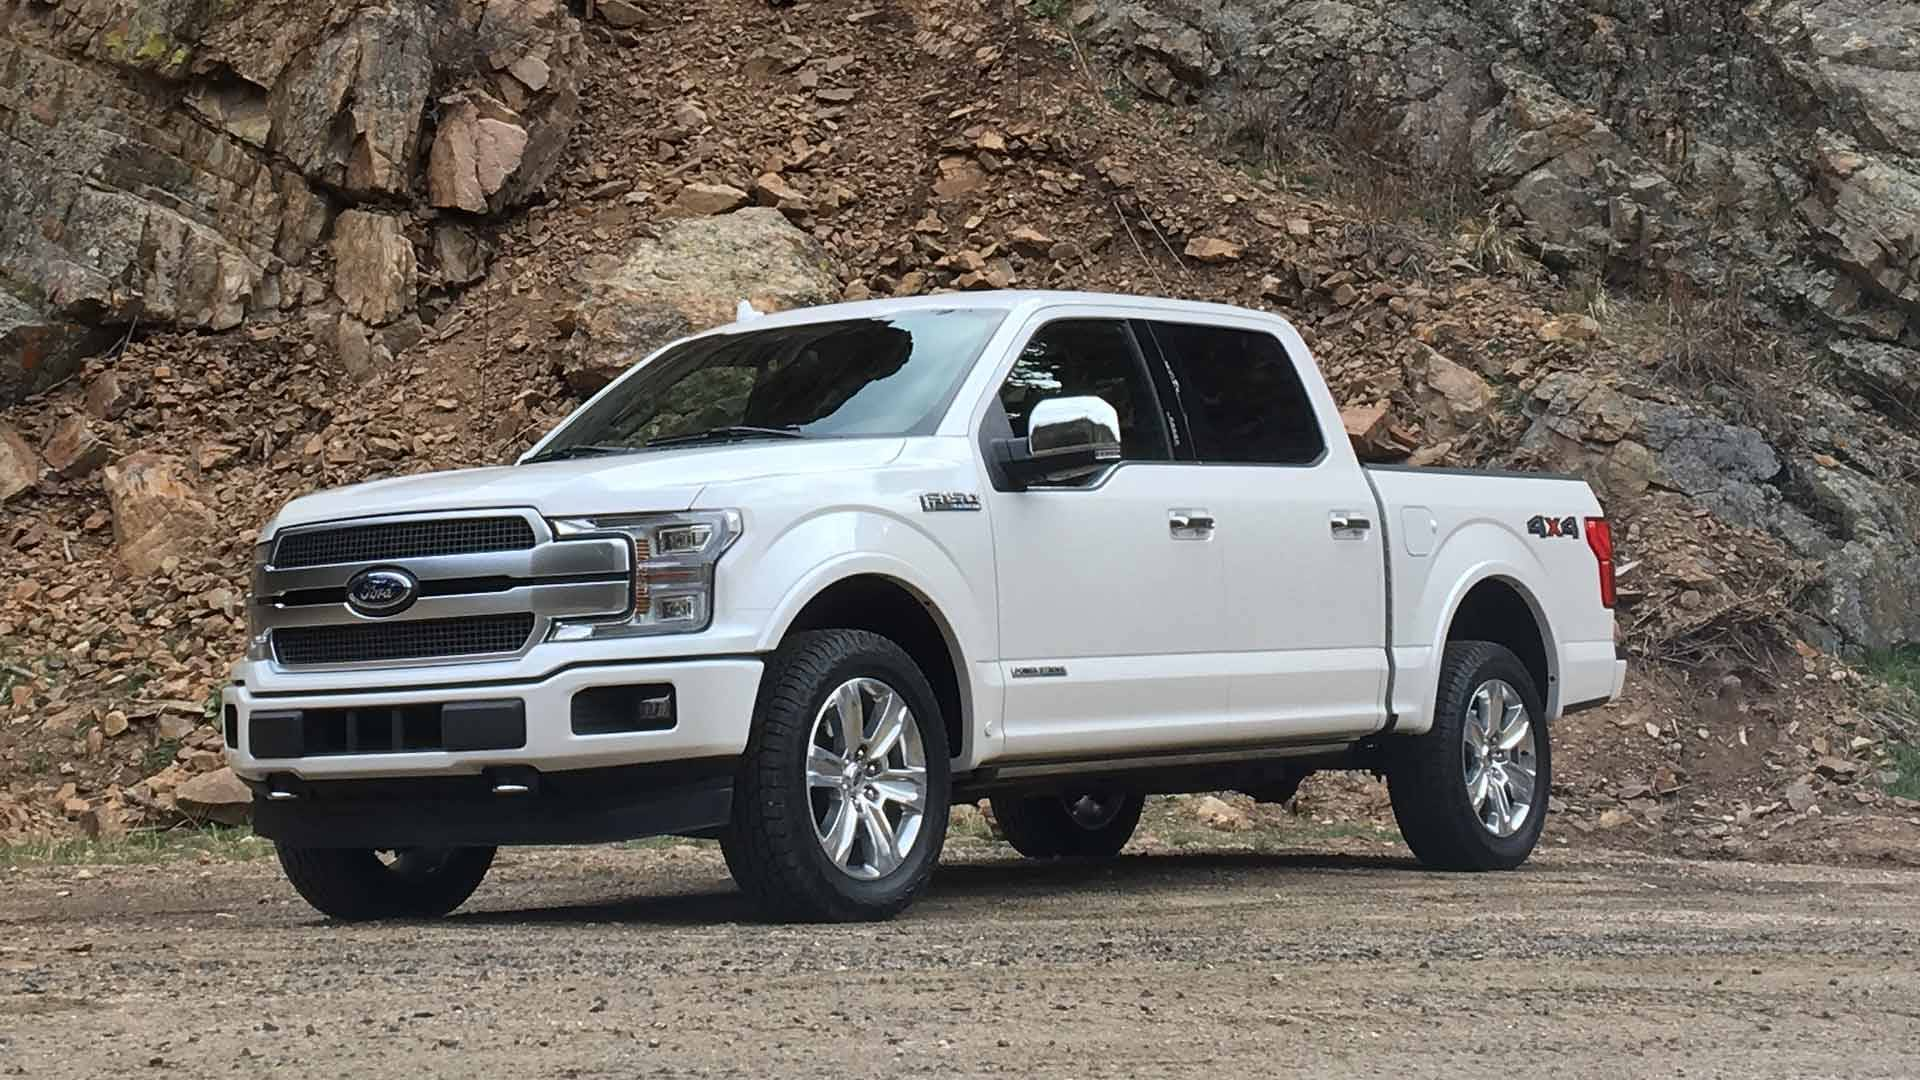 2018 ford f 150 power stroke diesel first drive zero compromise